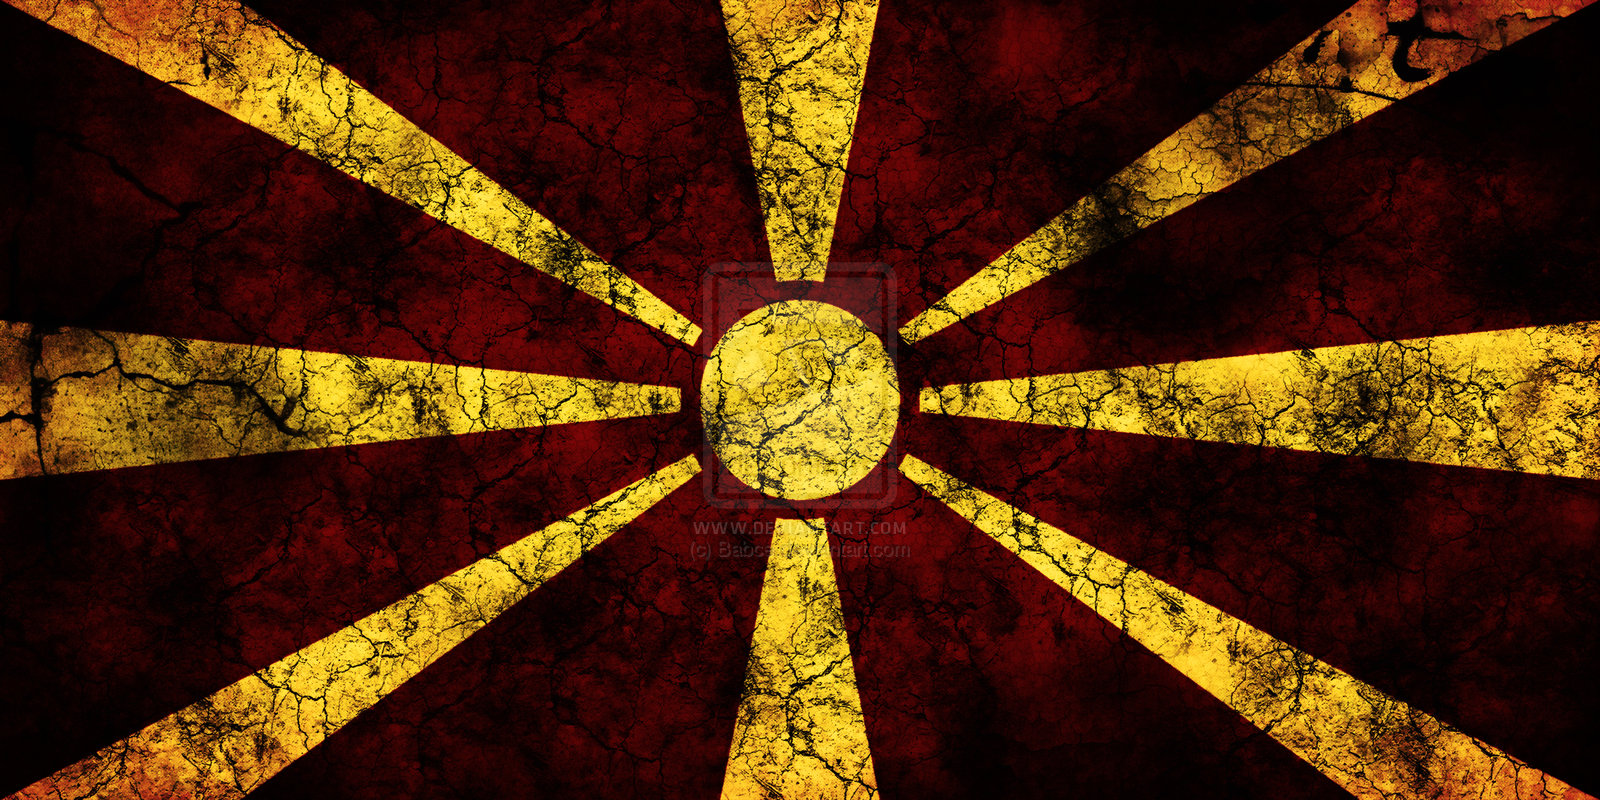 Motivational Wallpapers Hd 1 Flag Of The Republic Of Macedonia Hd Wallpapers